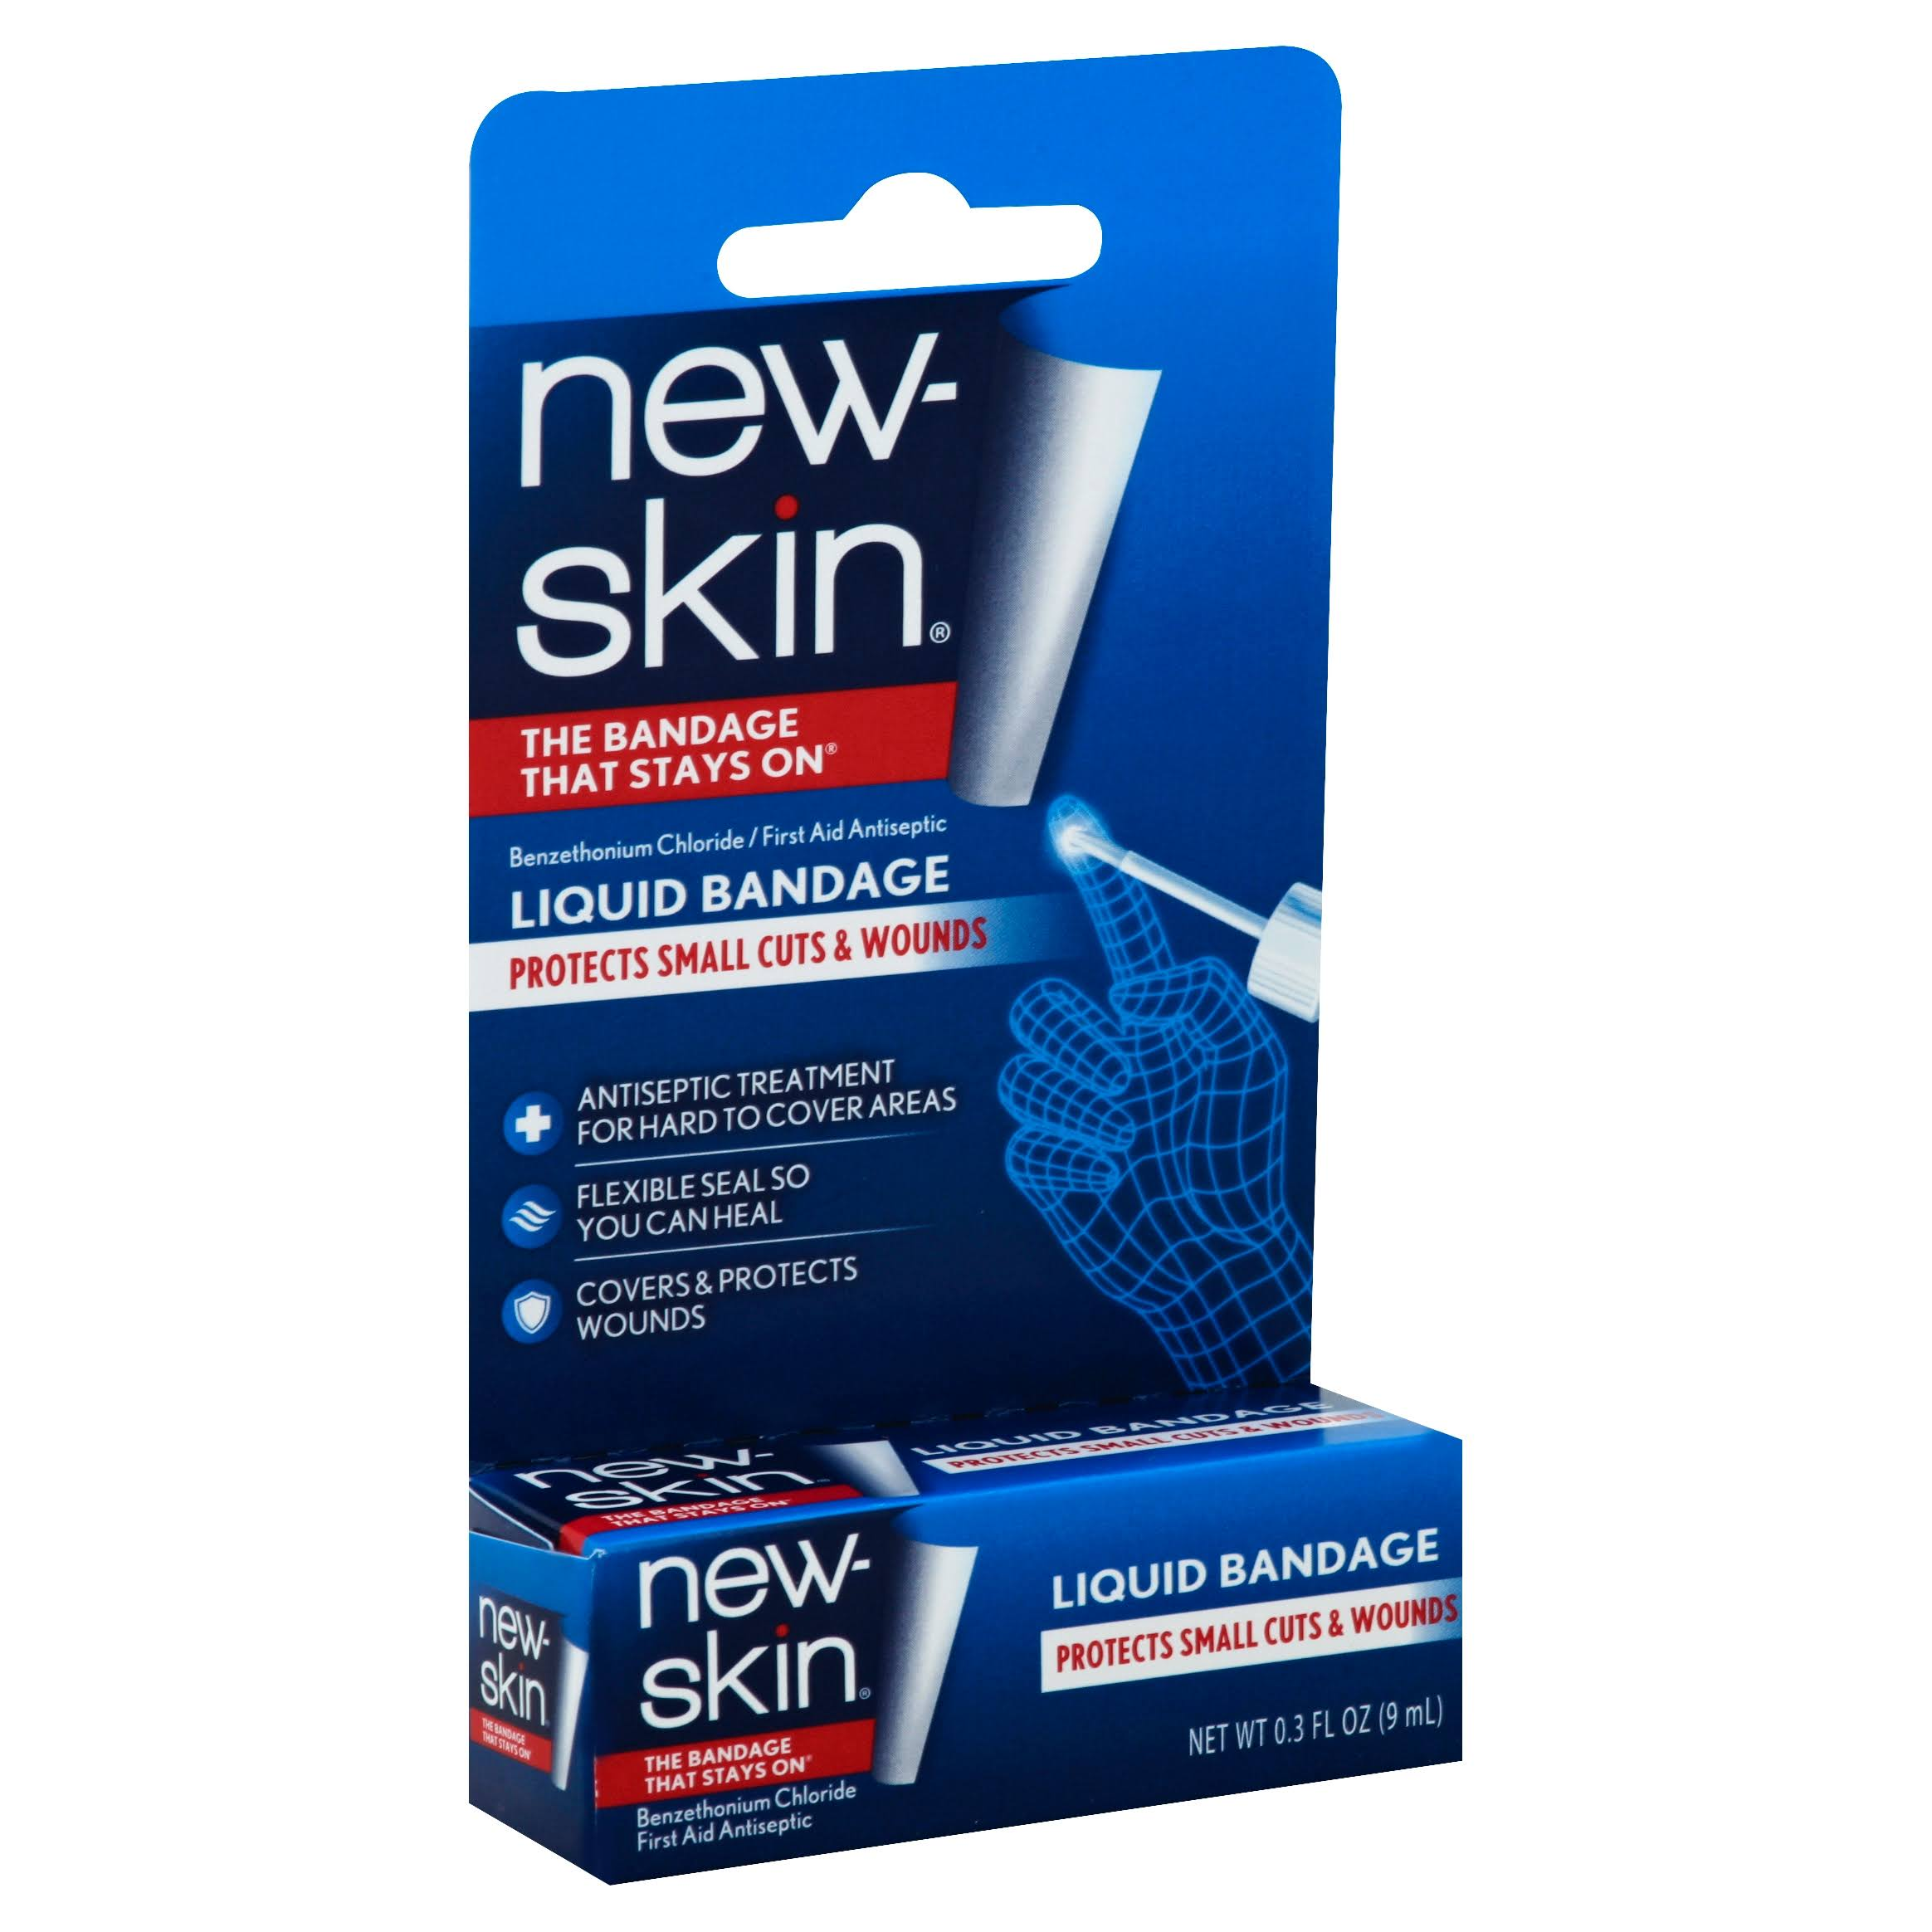 New Skin Liquid Bandage - 9ml